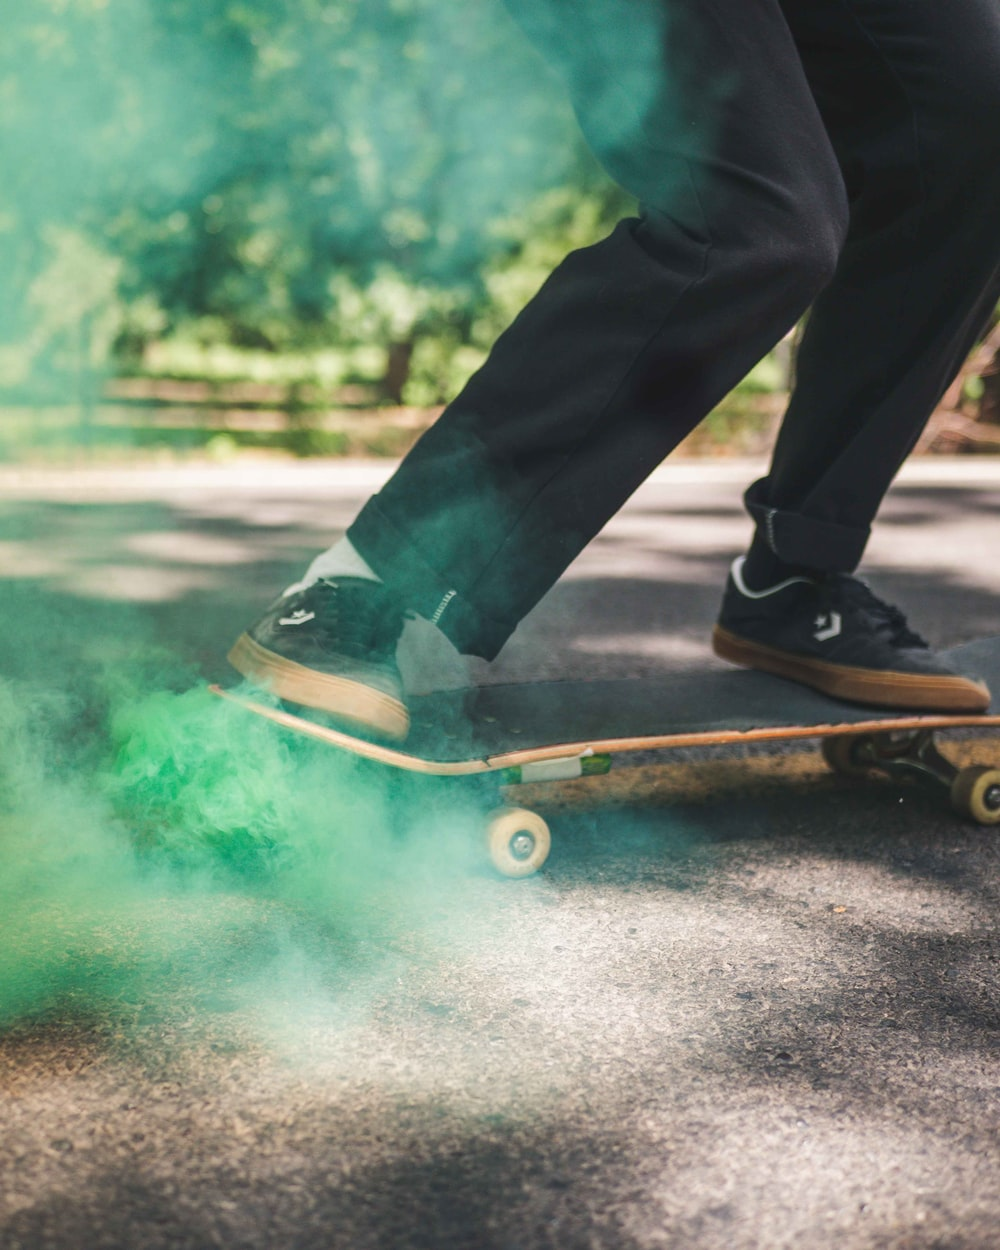 person in black pants and black shoes sitting on brown wooden skateboard